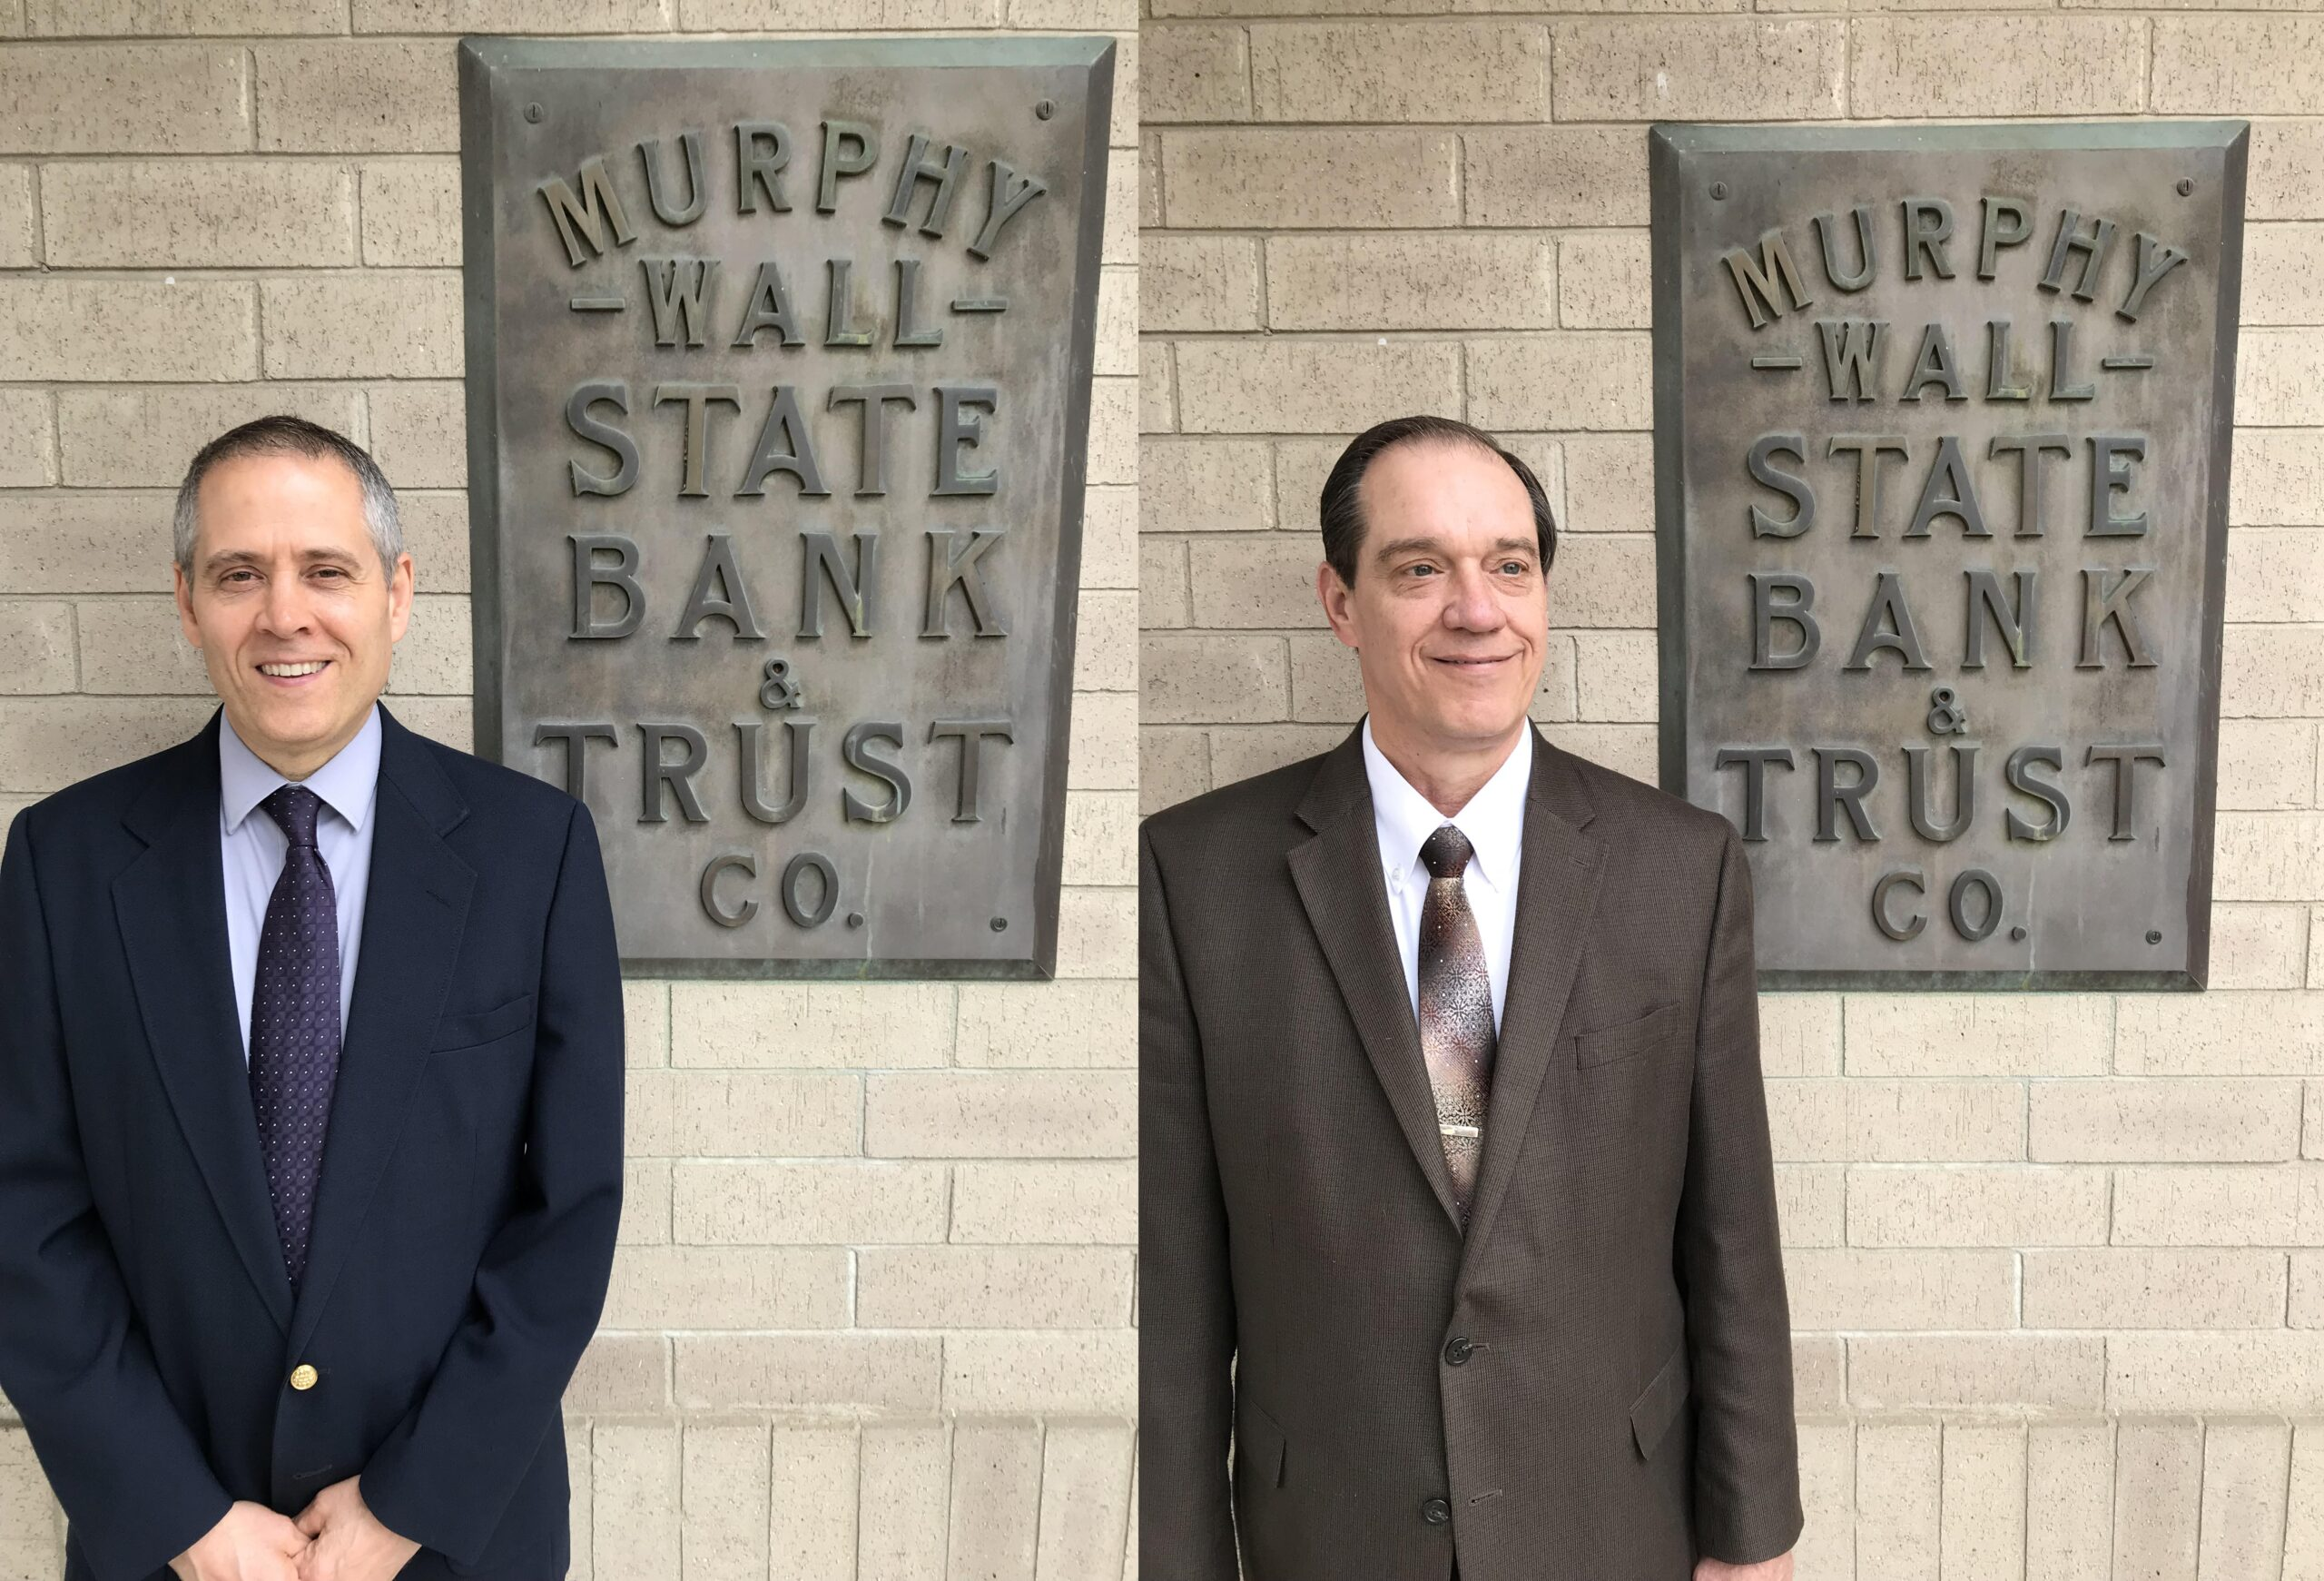 Murphy-Wall State Bank EVPs Brian Chandler and Charles Dobrinick